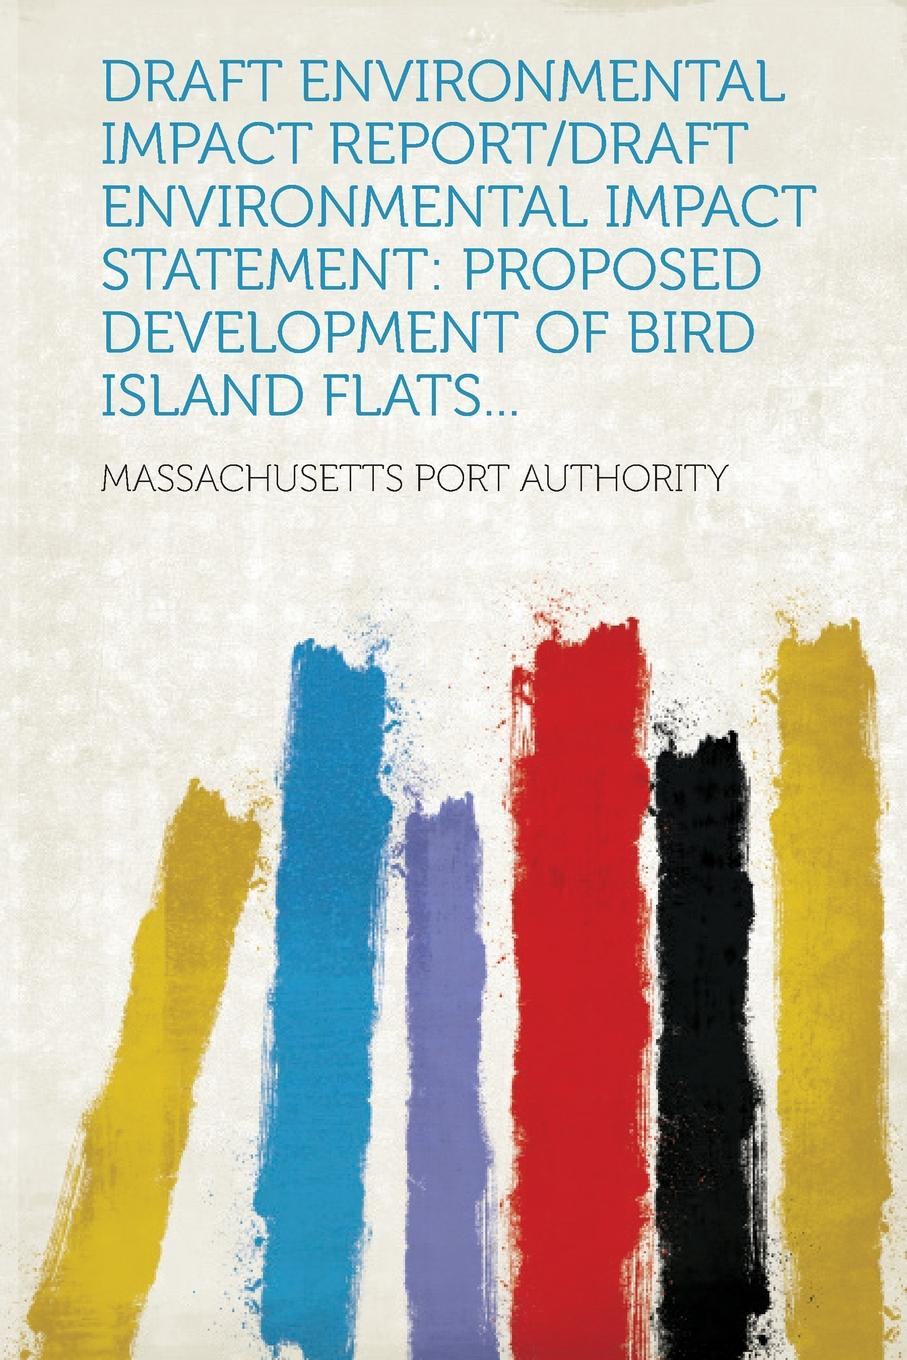 Draft Environmental Impact Report/Draft Environmental Impact Statement. Proposed Development of Bird Island Flats...